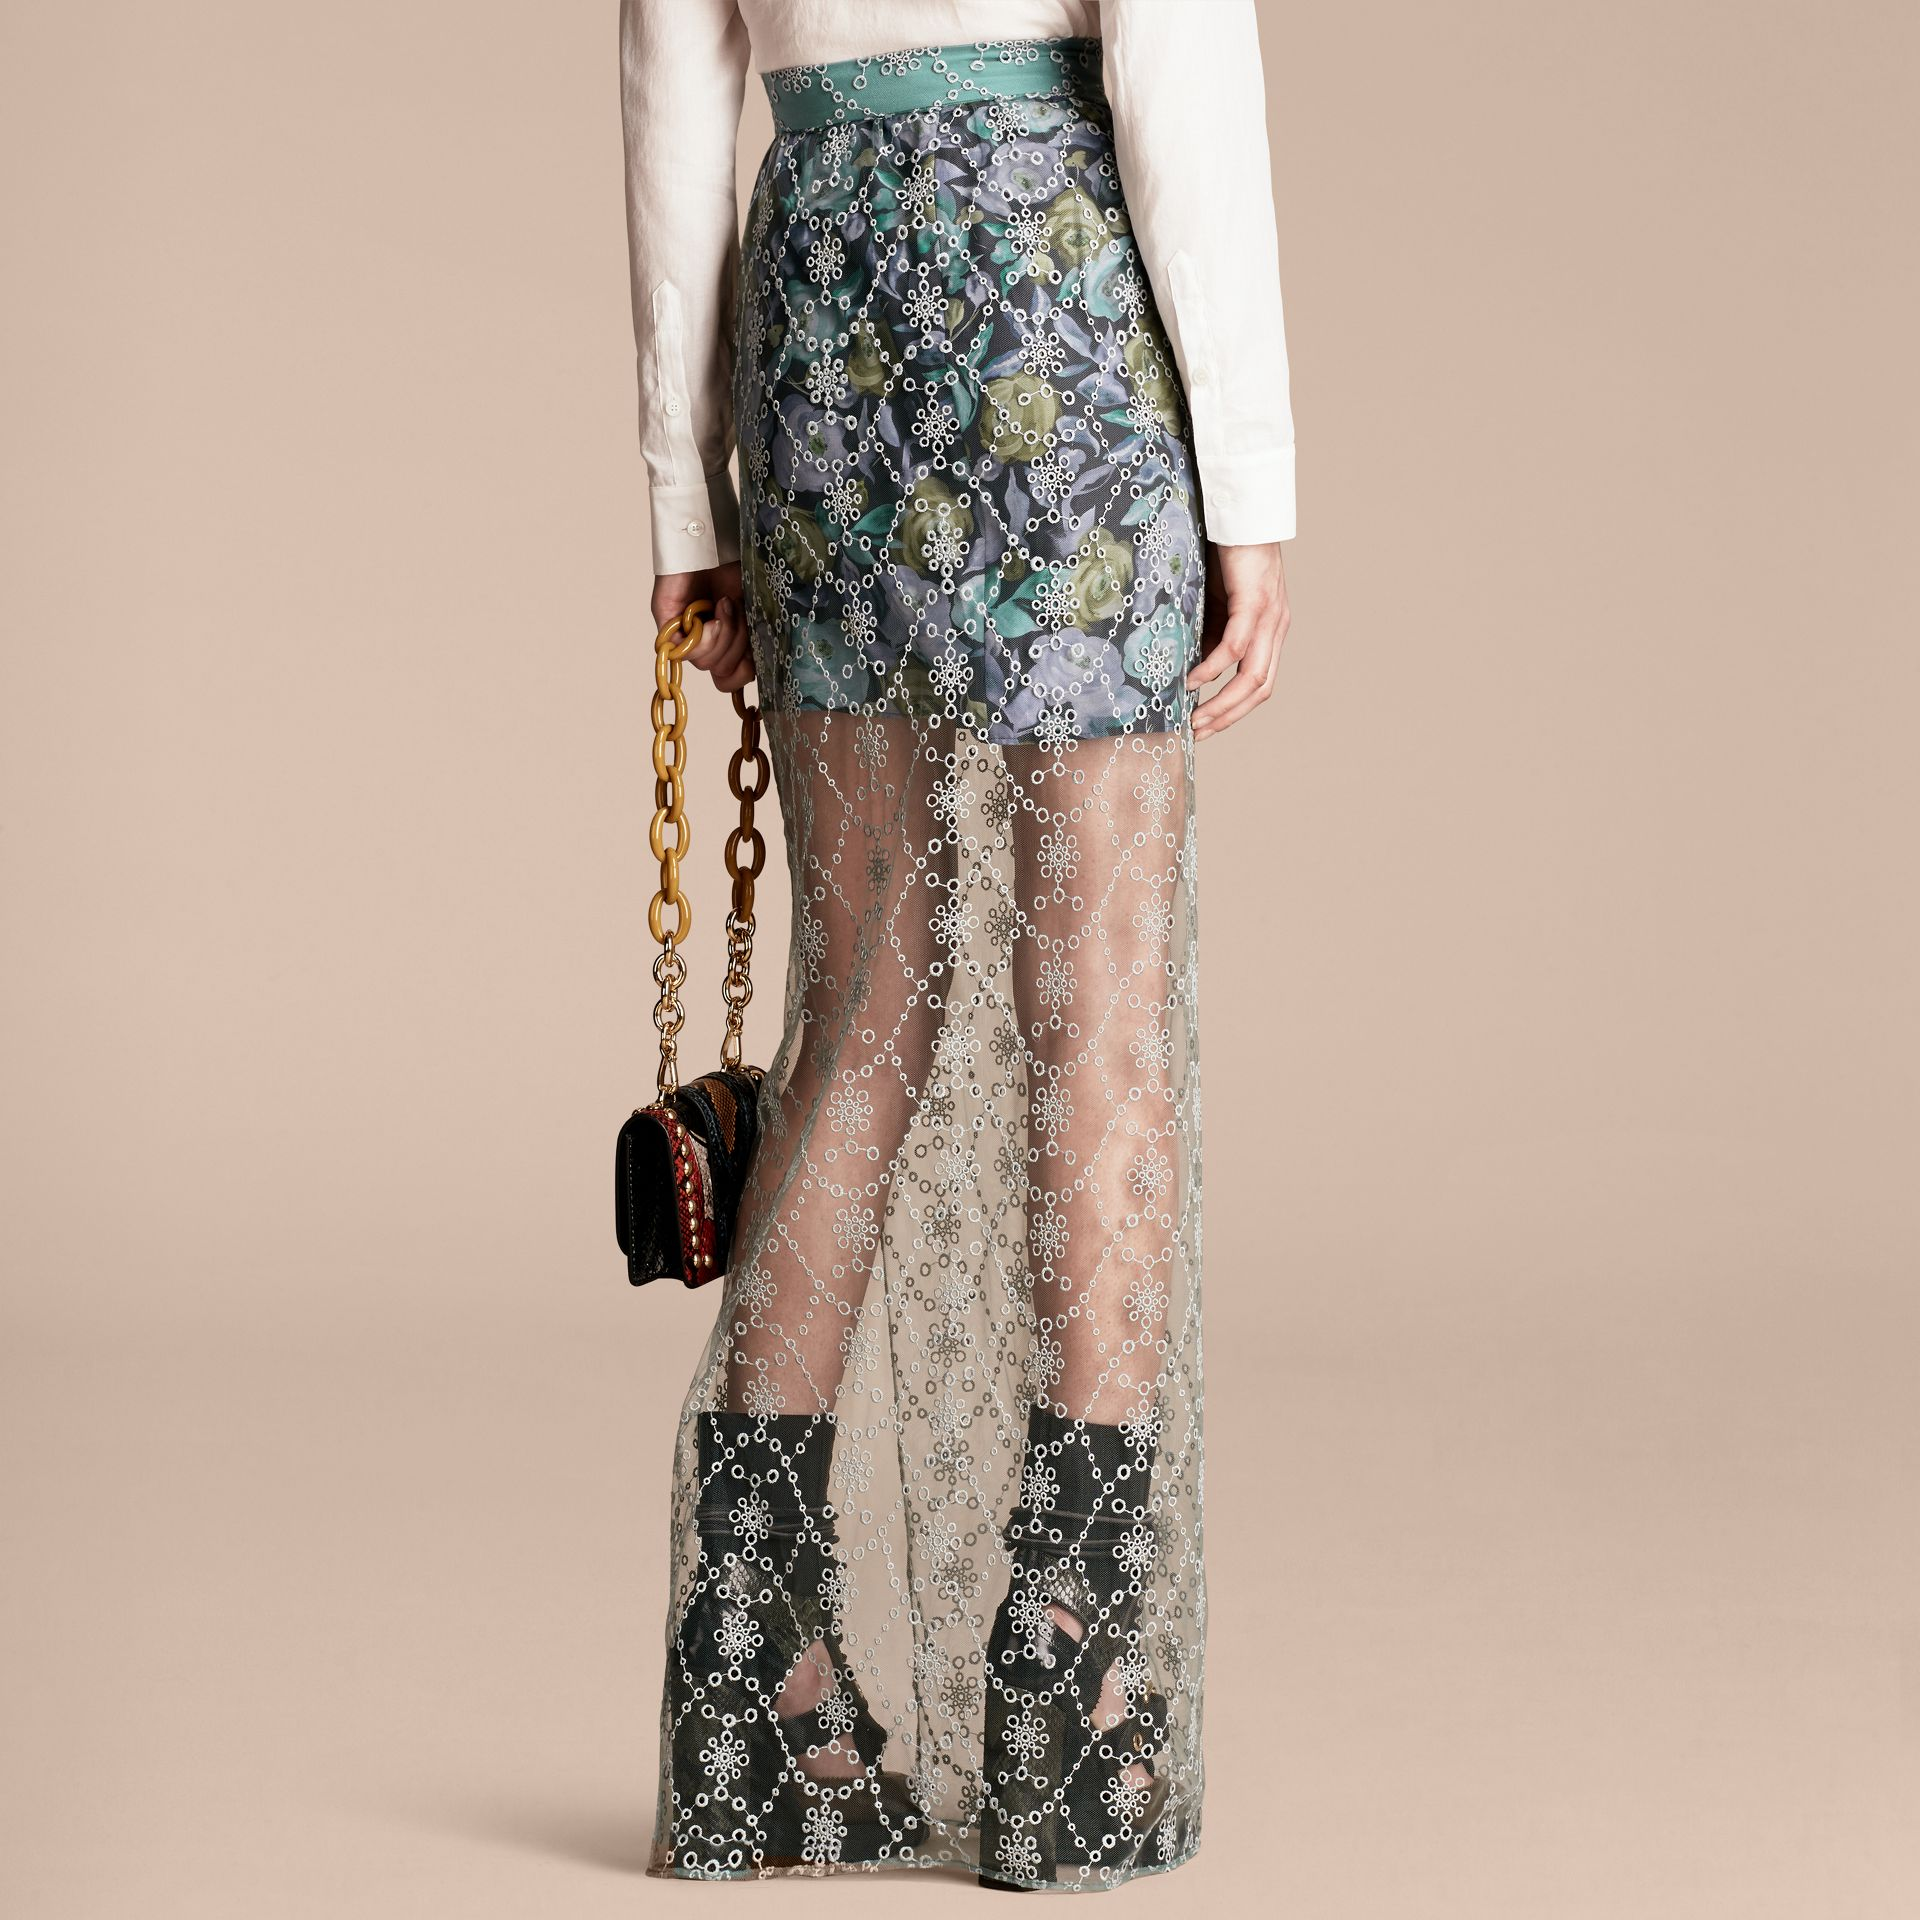 Aqua green Embroidered Tulle Column Skirt with Rose Print Lining - gallery image 3